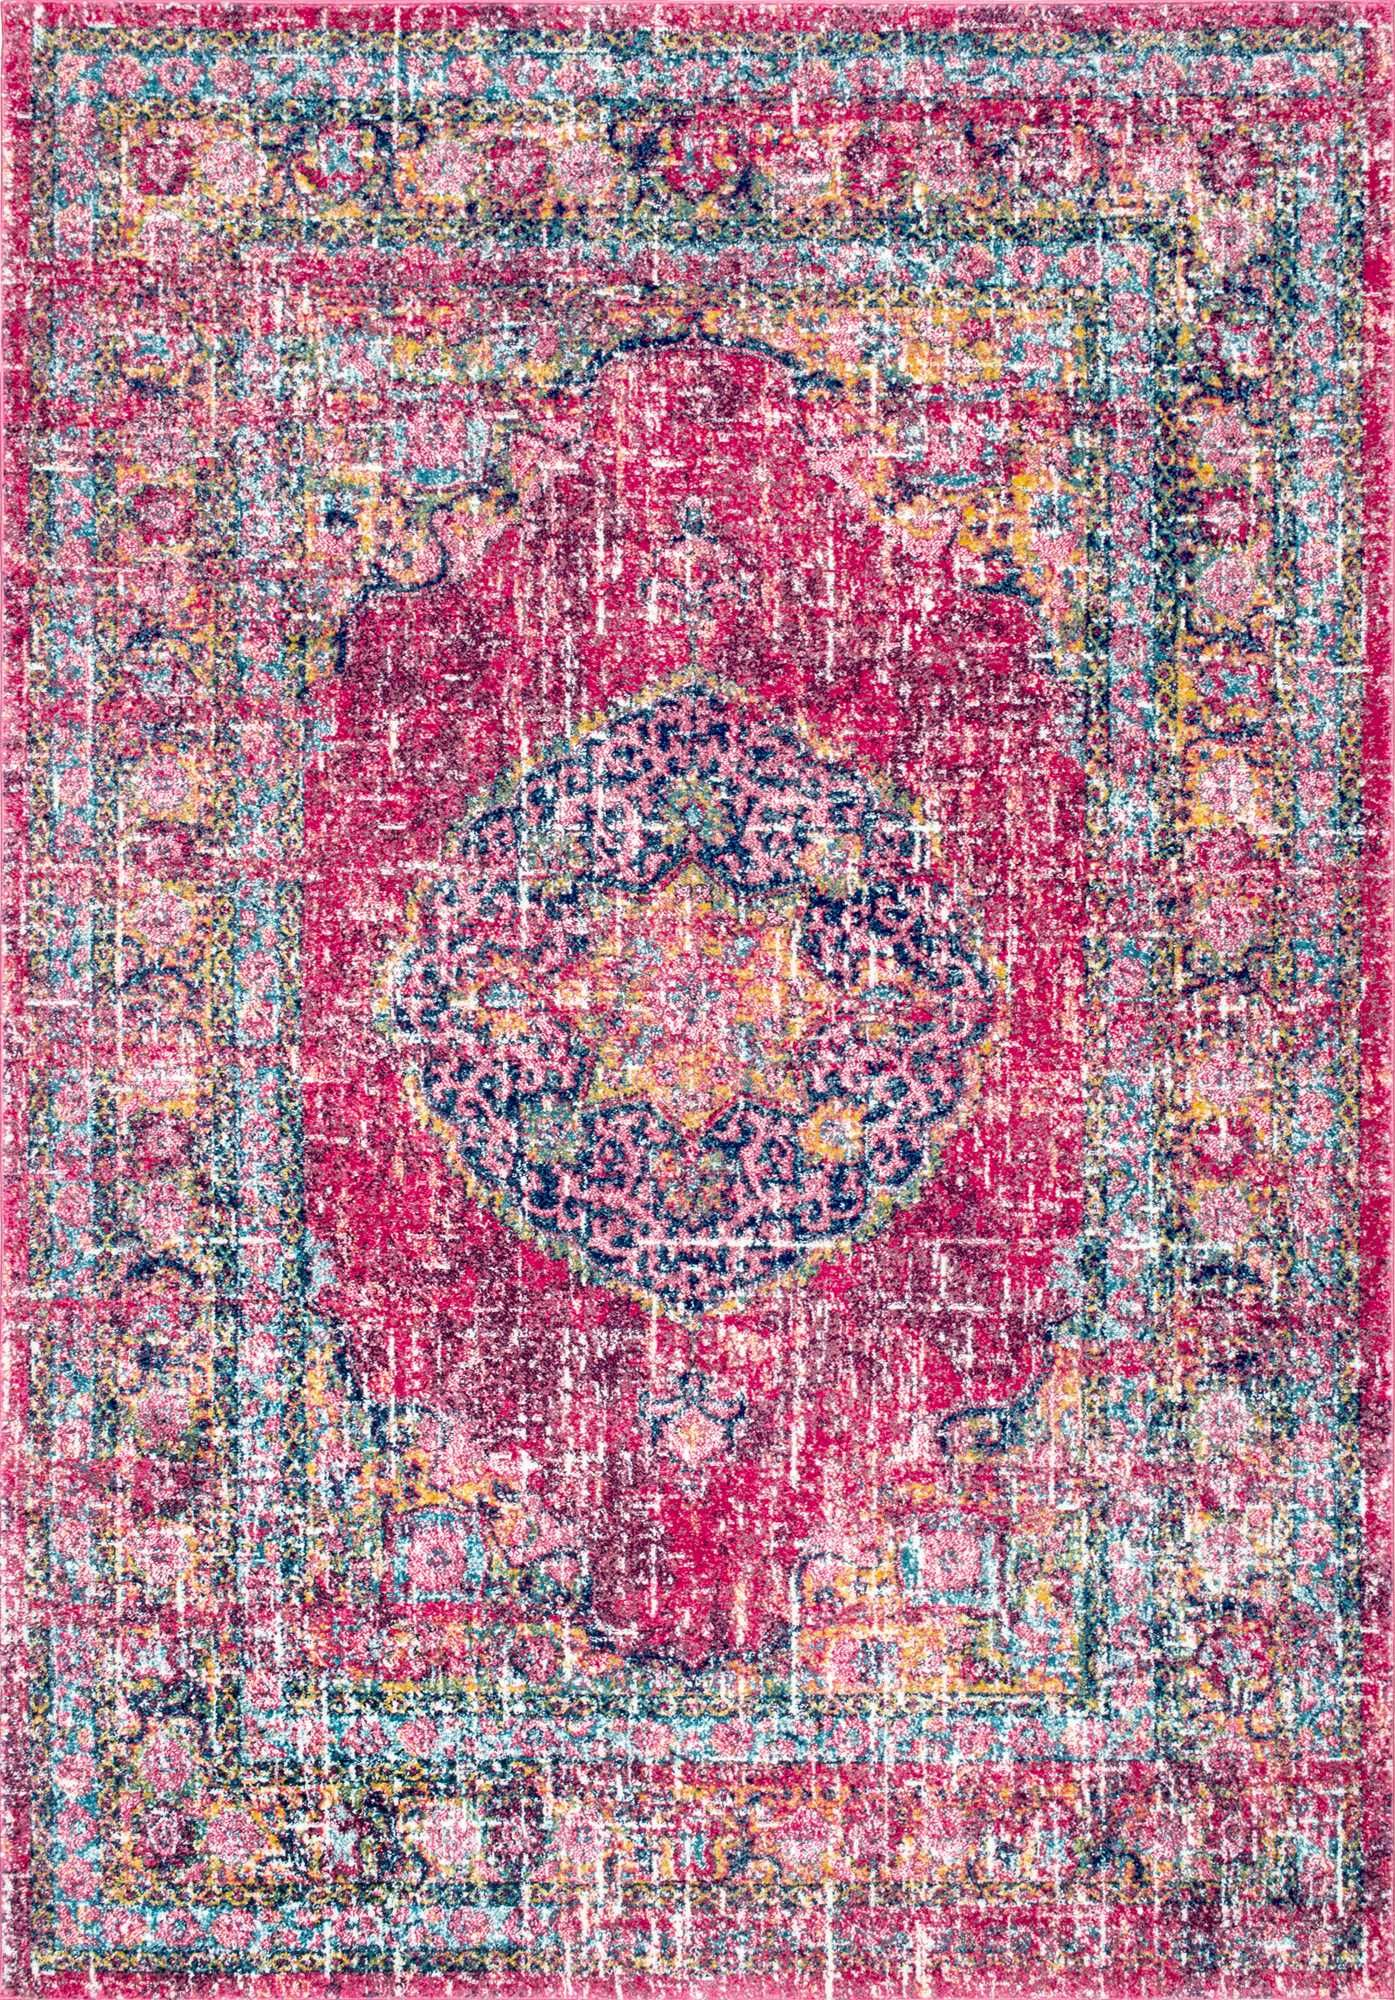 Pretty And Pink This Is Rugs Usa S Bosphorus Birgen